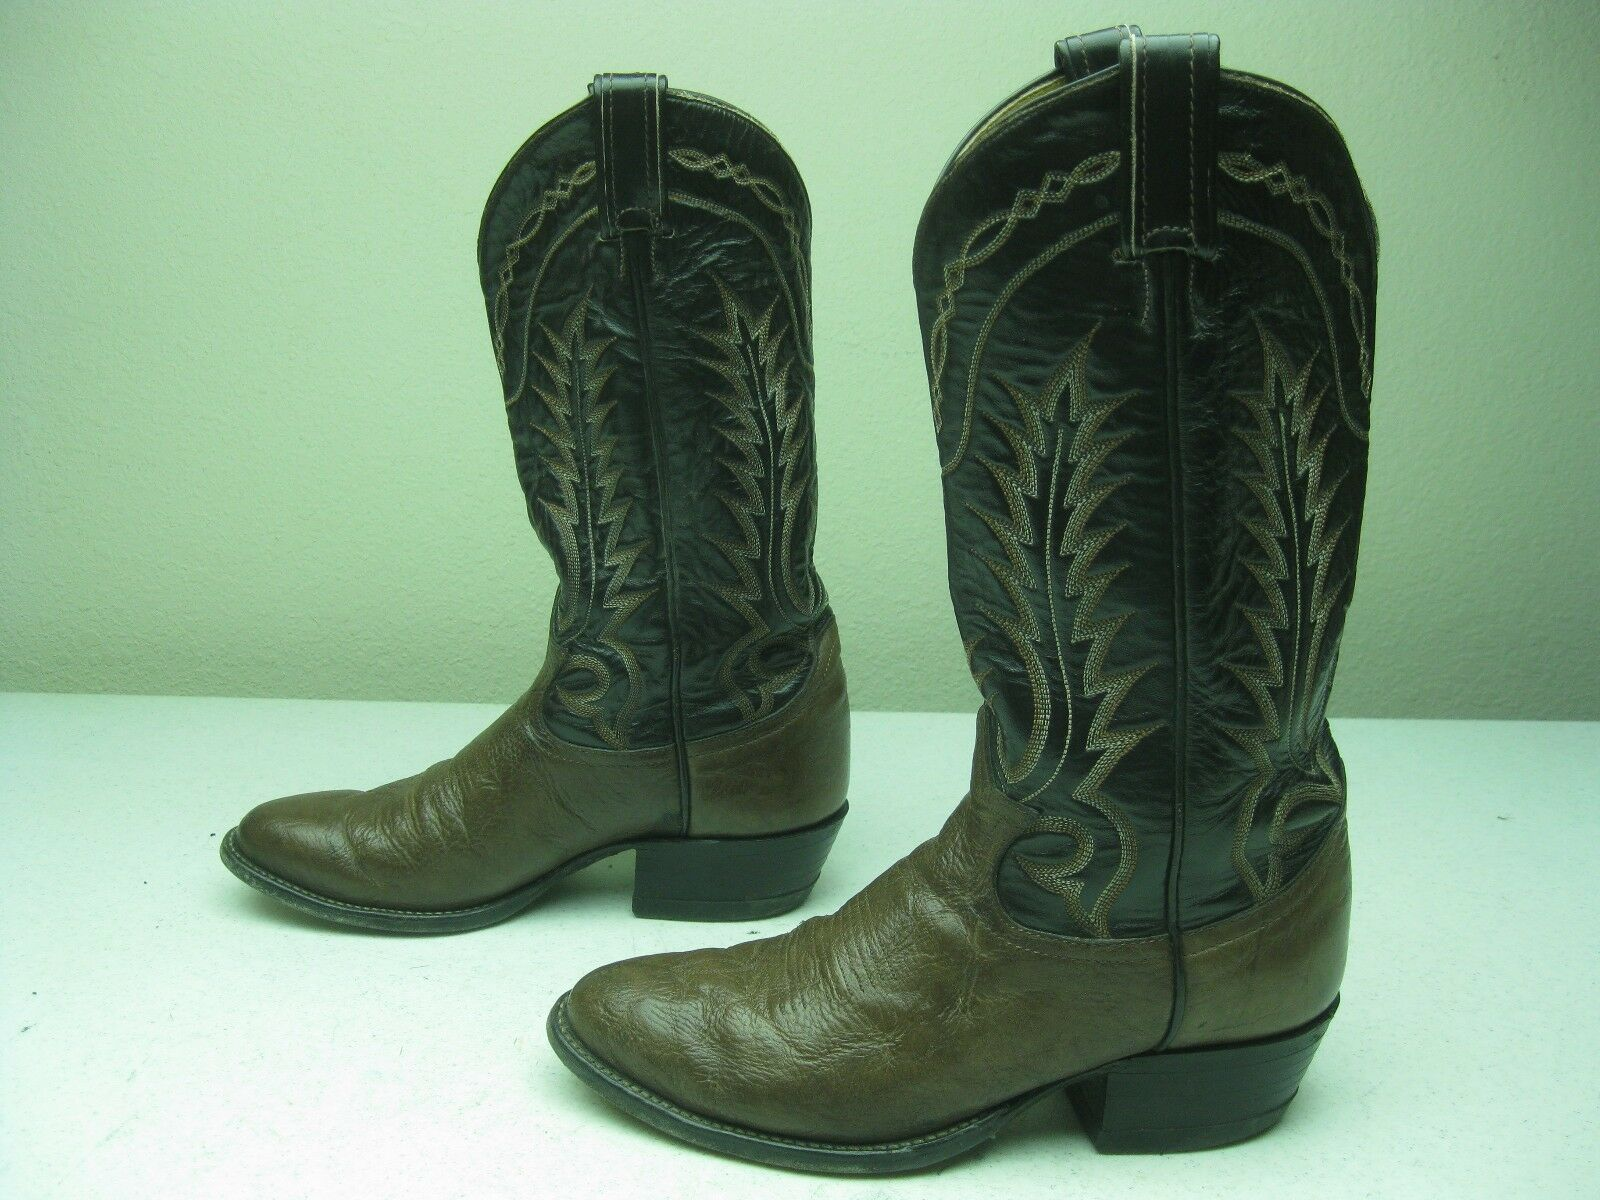 BROWN TONY IN LAMA MADE IN TONY  A COWBOY WESTERN BOOTS 7.5 D 3d25c7